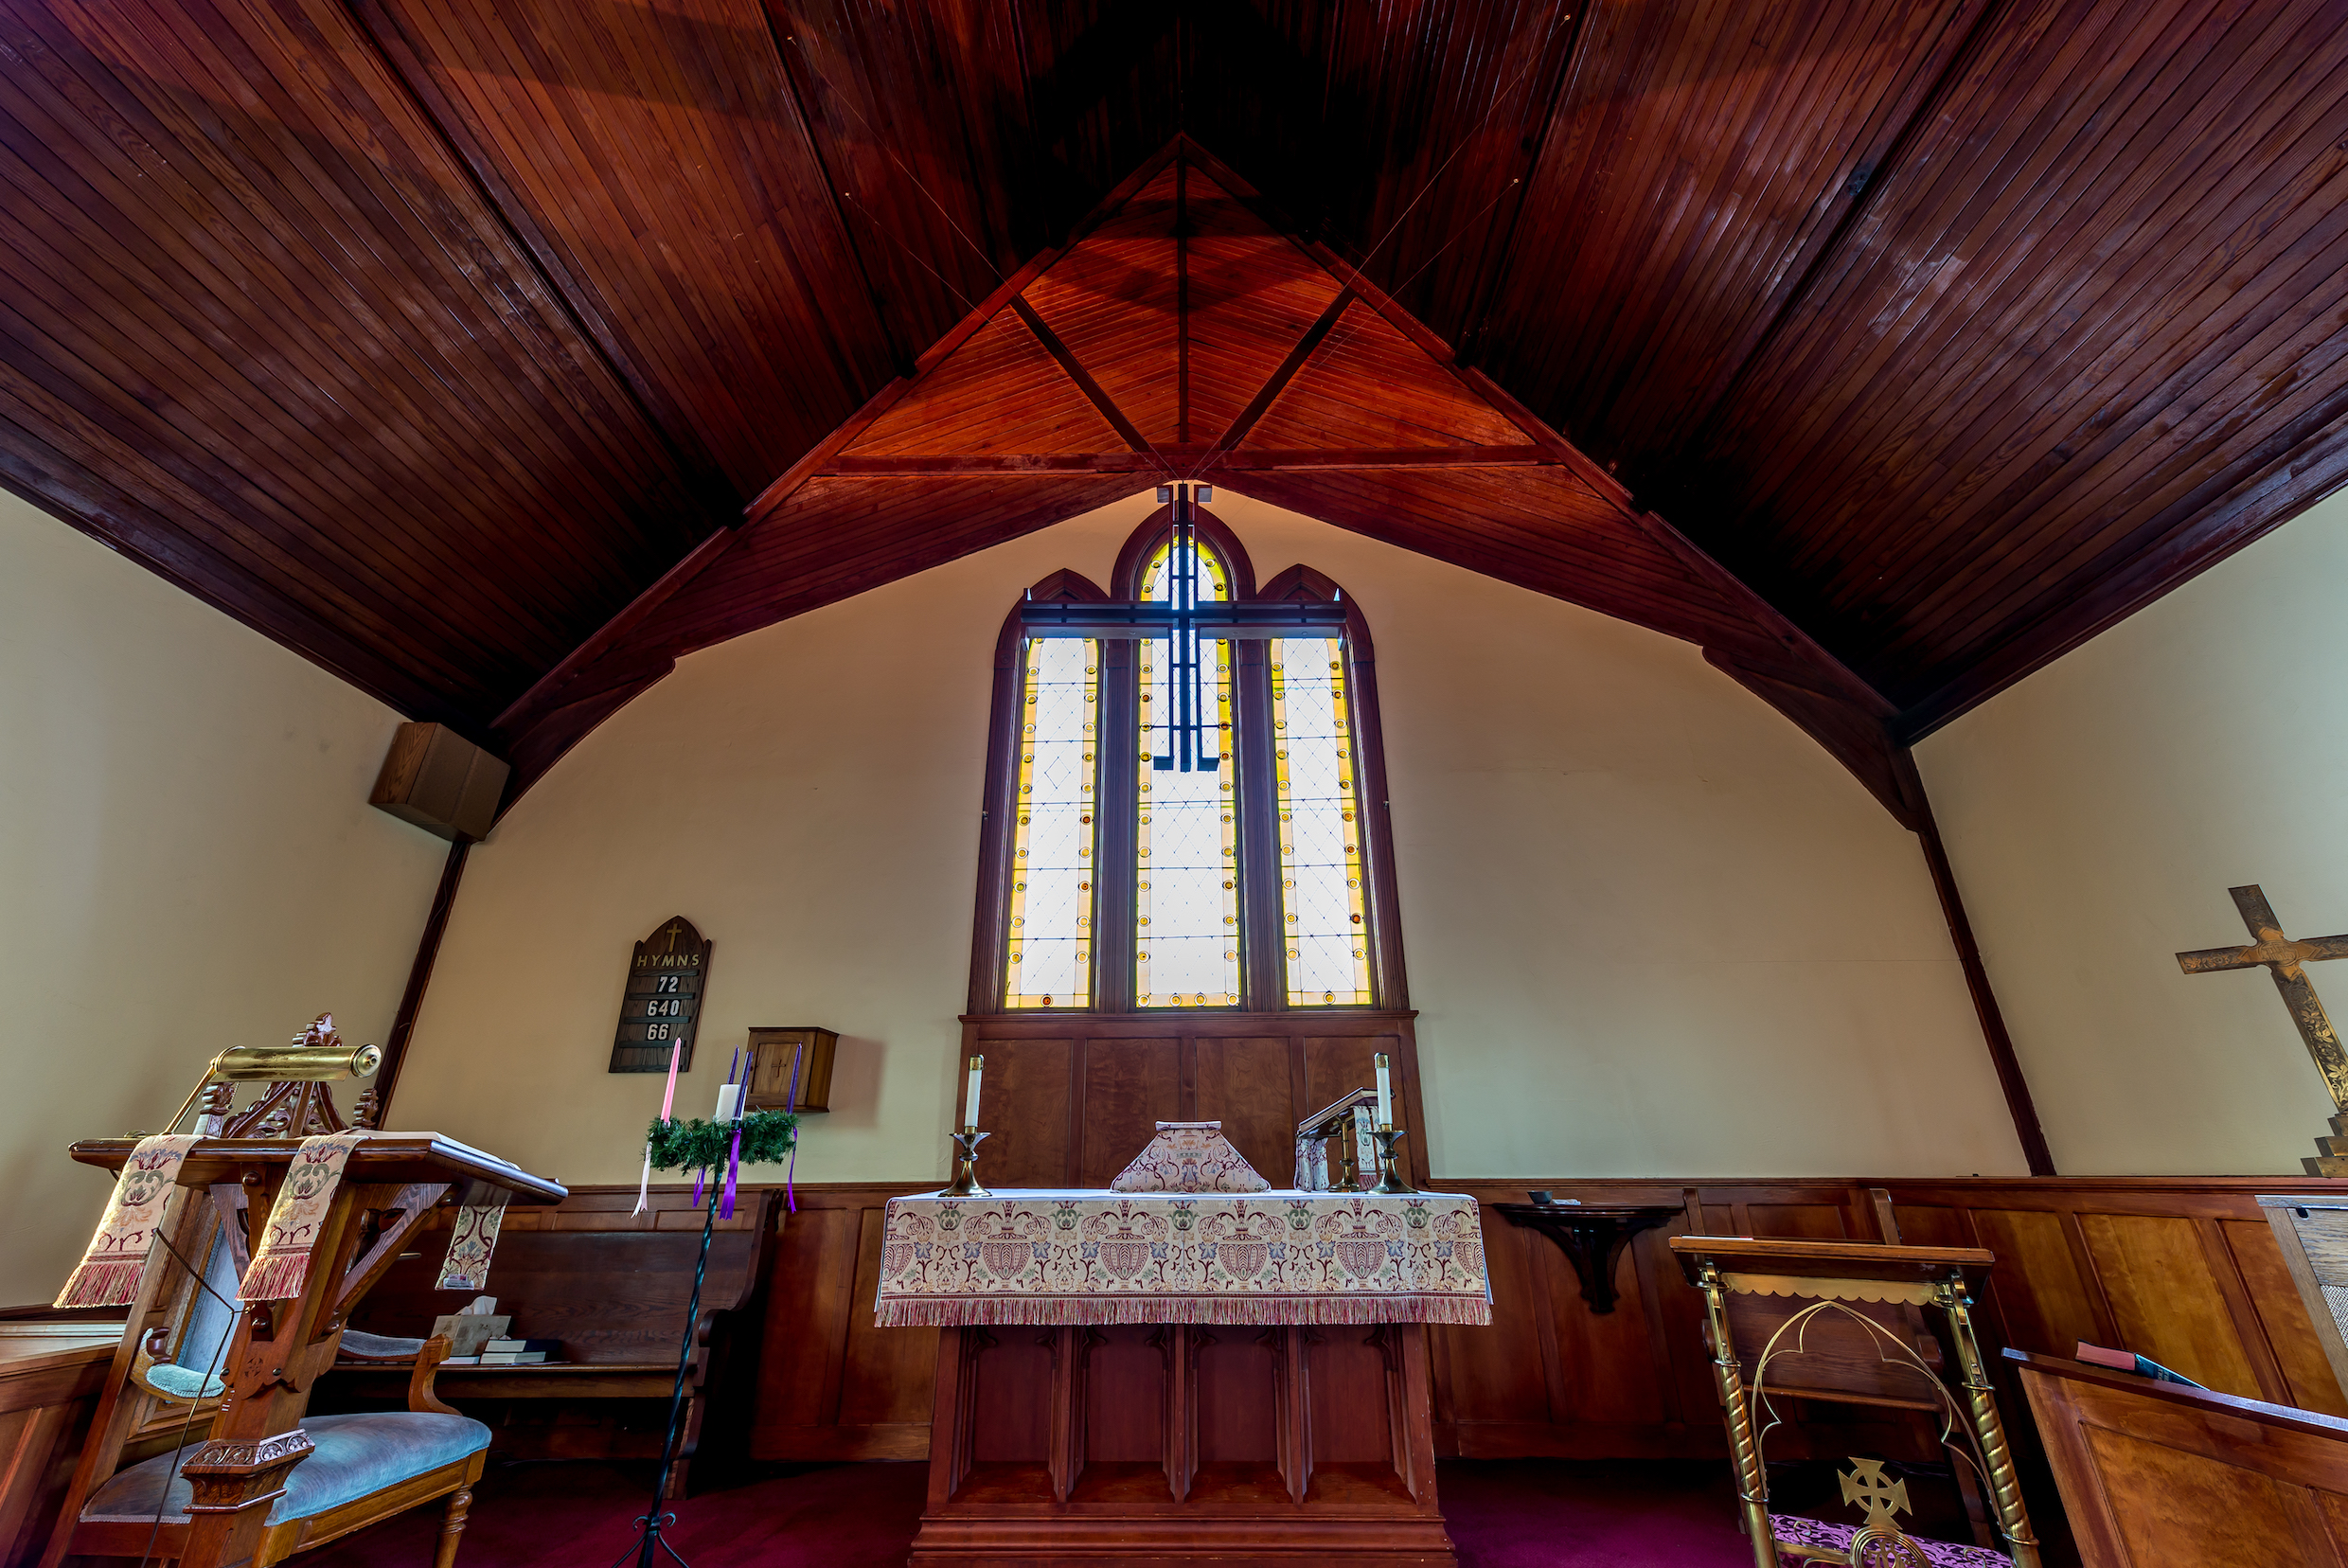 The altar at St. Paul's Episcopal in Westbrook, CT